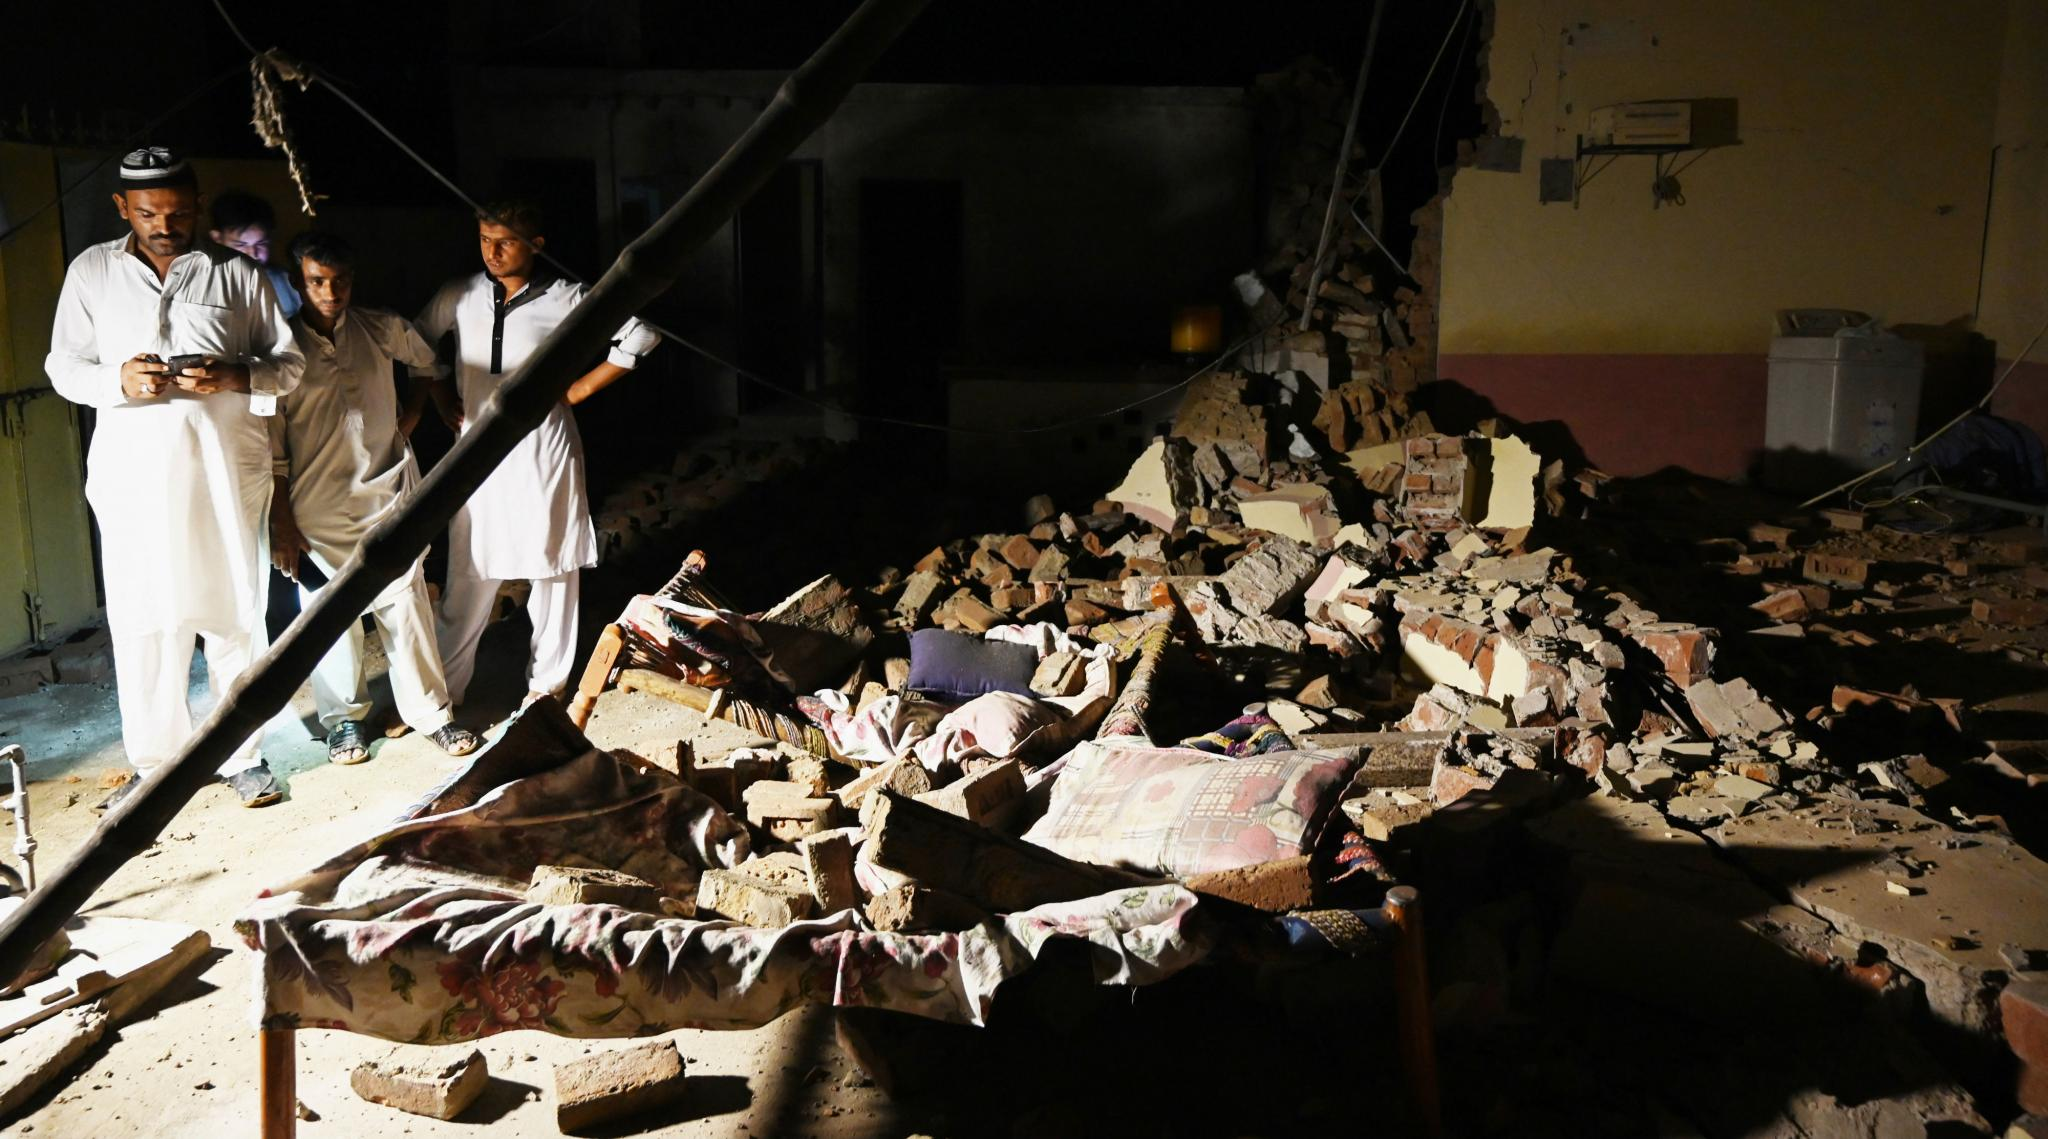 Pakistan Earthquake: Death Toll in Pak Quake Climbs to 22 As Rescuers Assess Damage